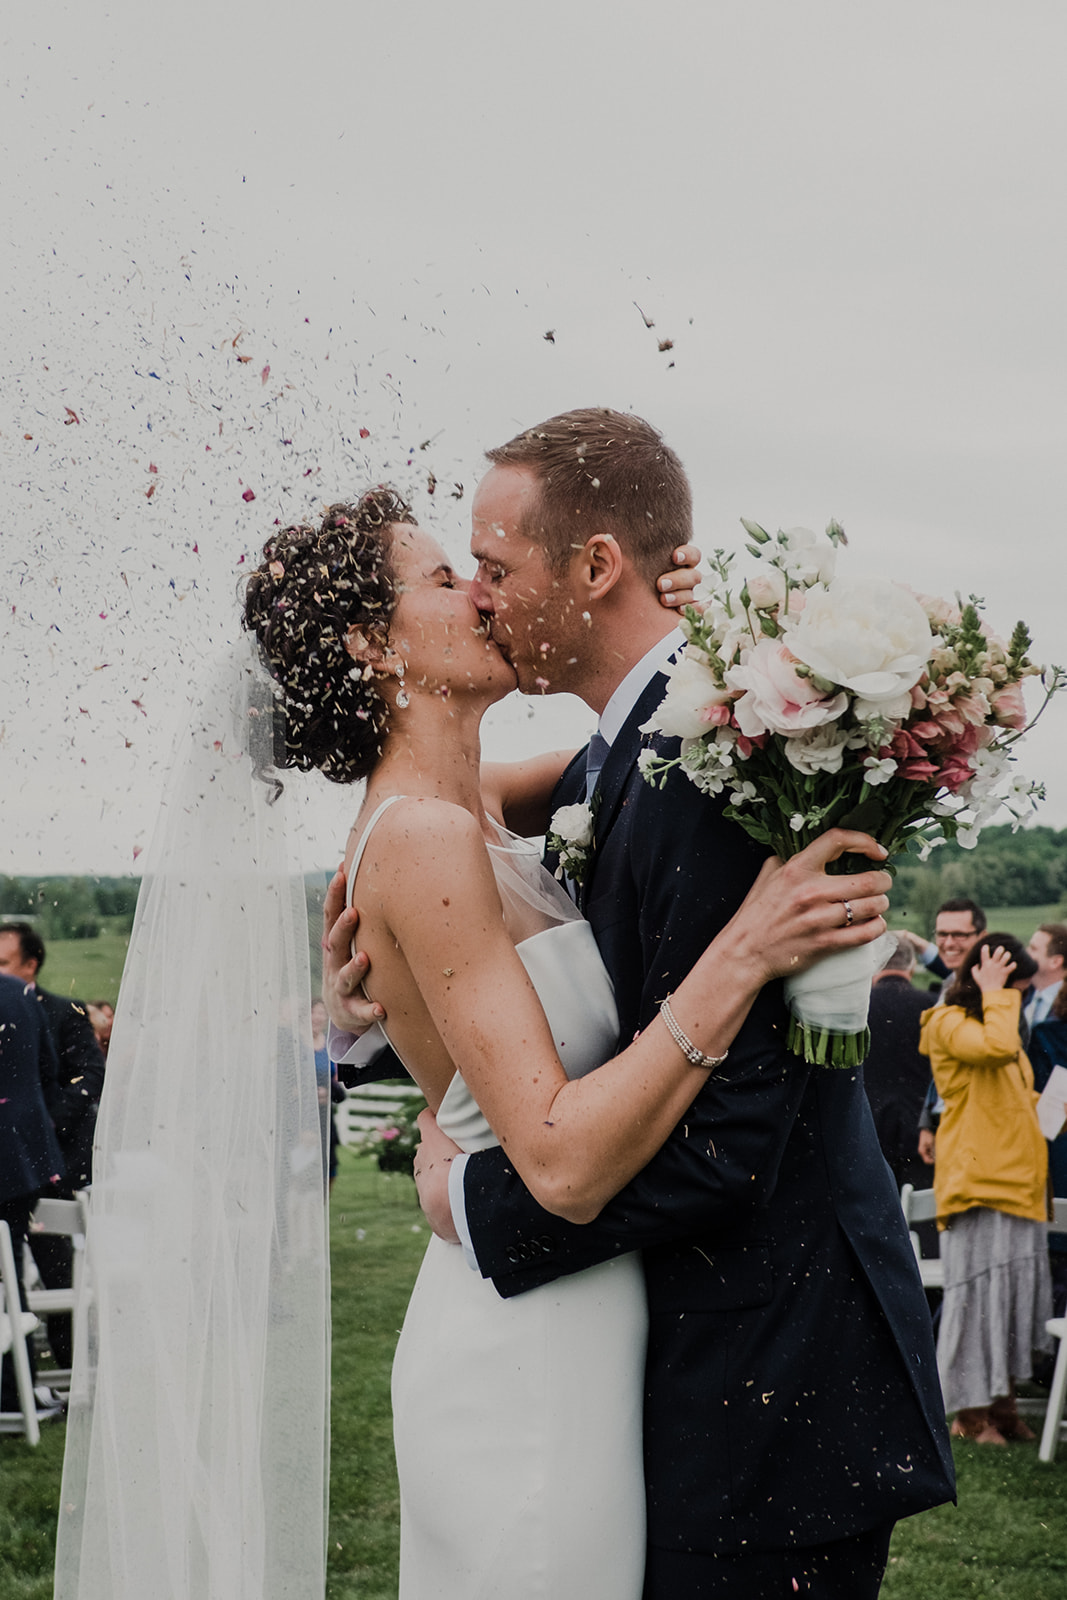 A bride and groom kiss in the aisle after their outdoor wedding ceremony at Blue Hill Farm in Waterford, VA as guests toss flower petal confetti.